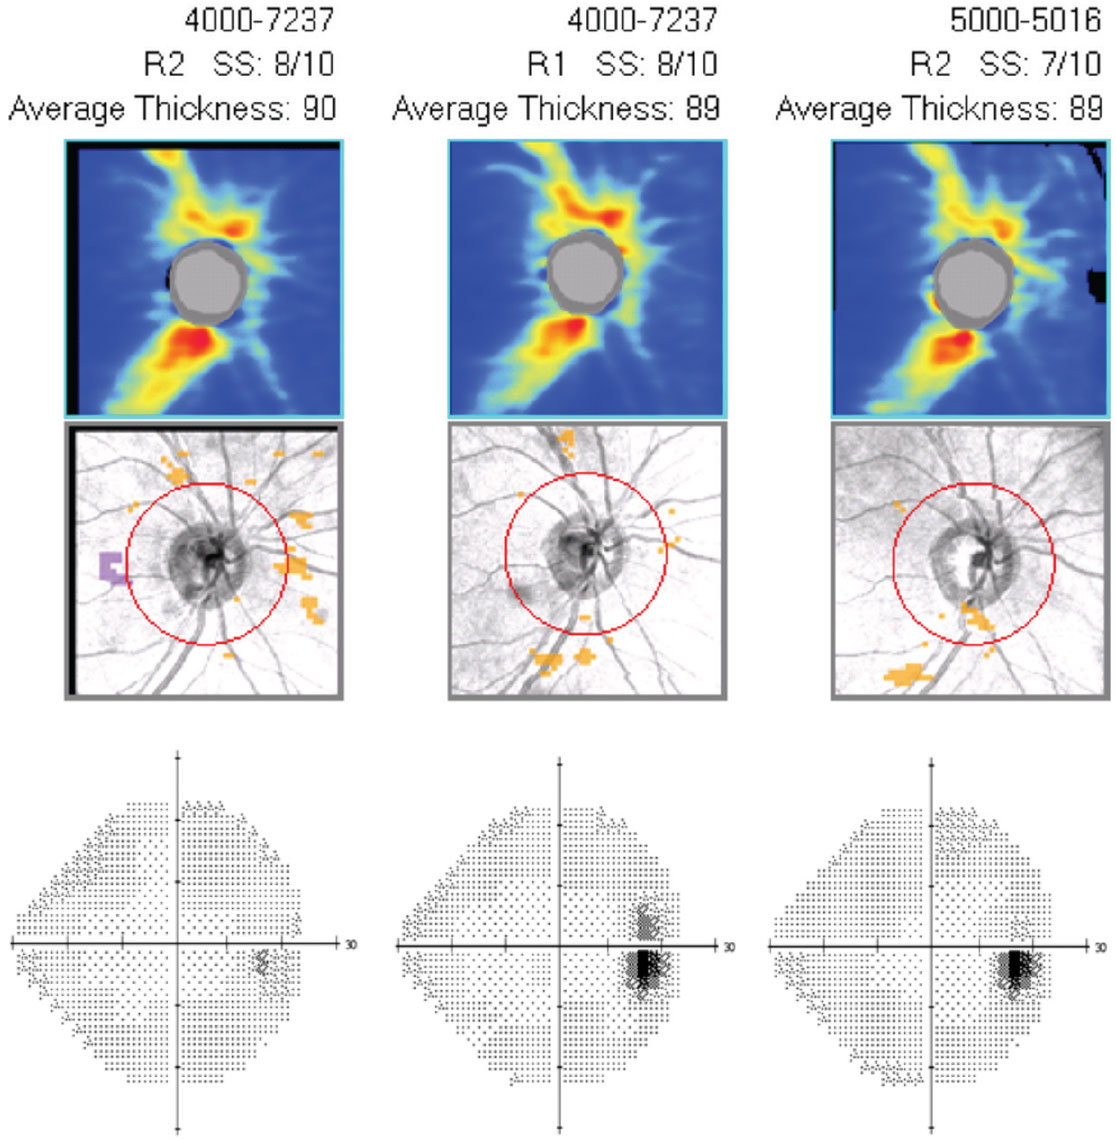 Case 6. This is the guided progression analysis (optic nerve head OCT) with visual fields (right eye only) of a 43-year-old black male who has been treated with Vyzulta for 25 months in both eyes. IOP has decreased 40% and has been consistent at follow ups since initiating the drug. His OCT and visual fields show no change over the 25-month period, indicating successful treatment.